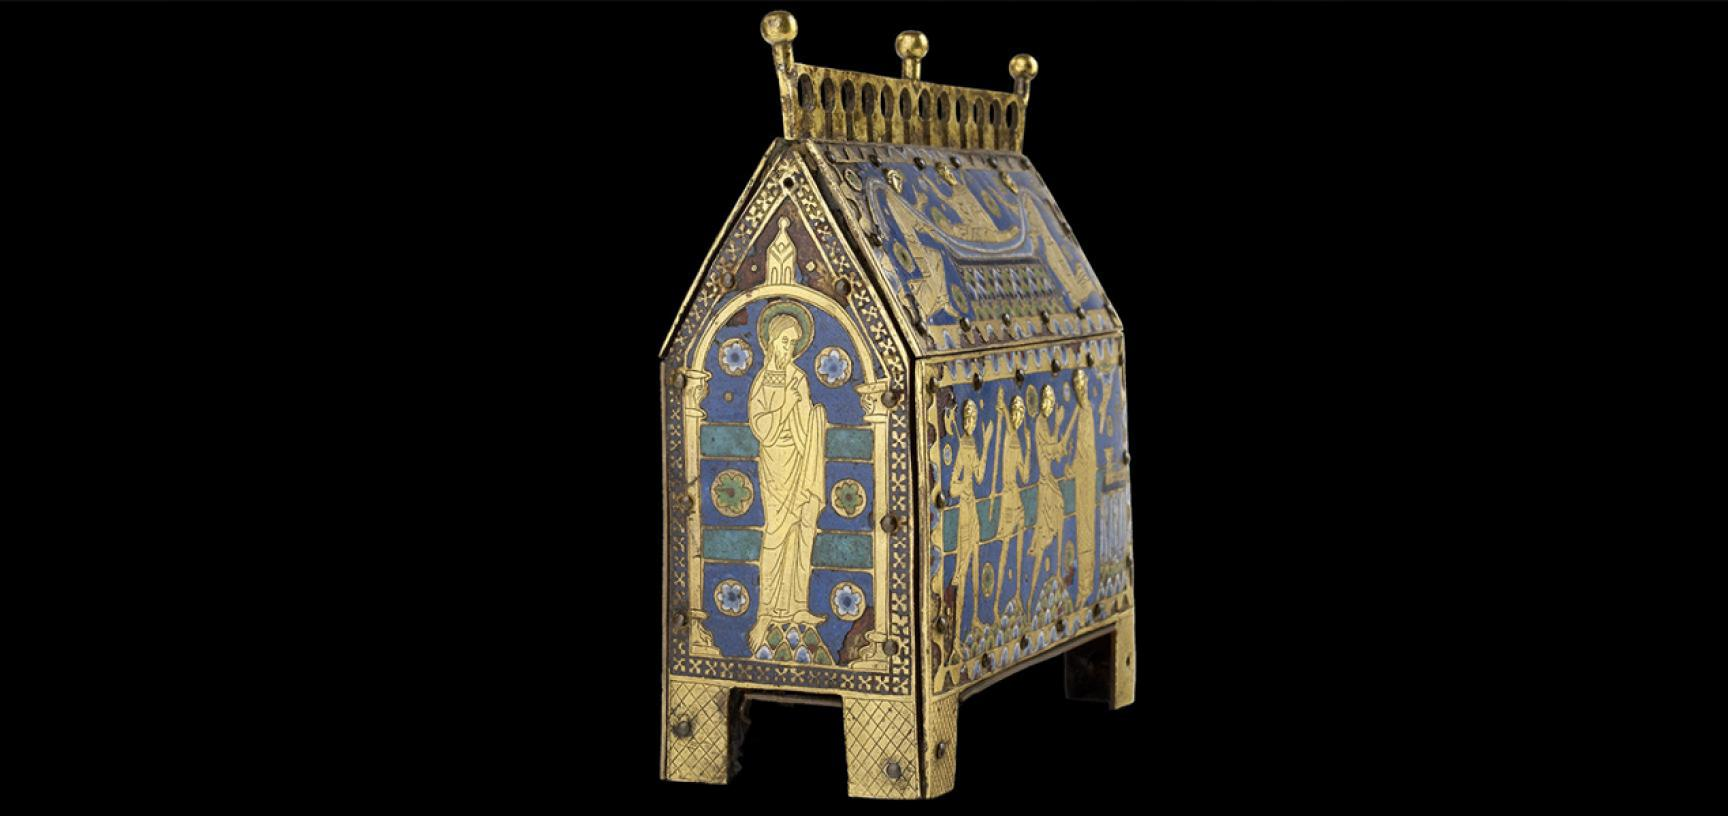 RELIQUARY CASKET OF ST THOMAS BECKET from the Ashmolean collections